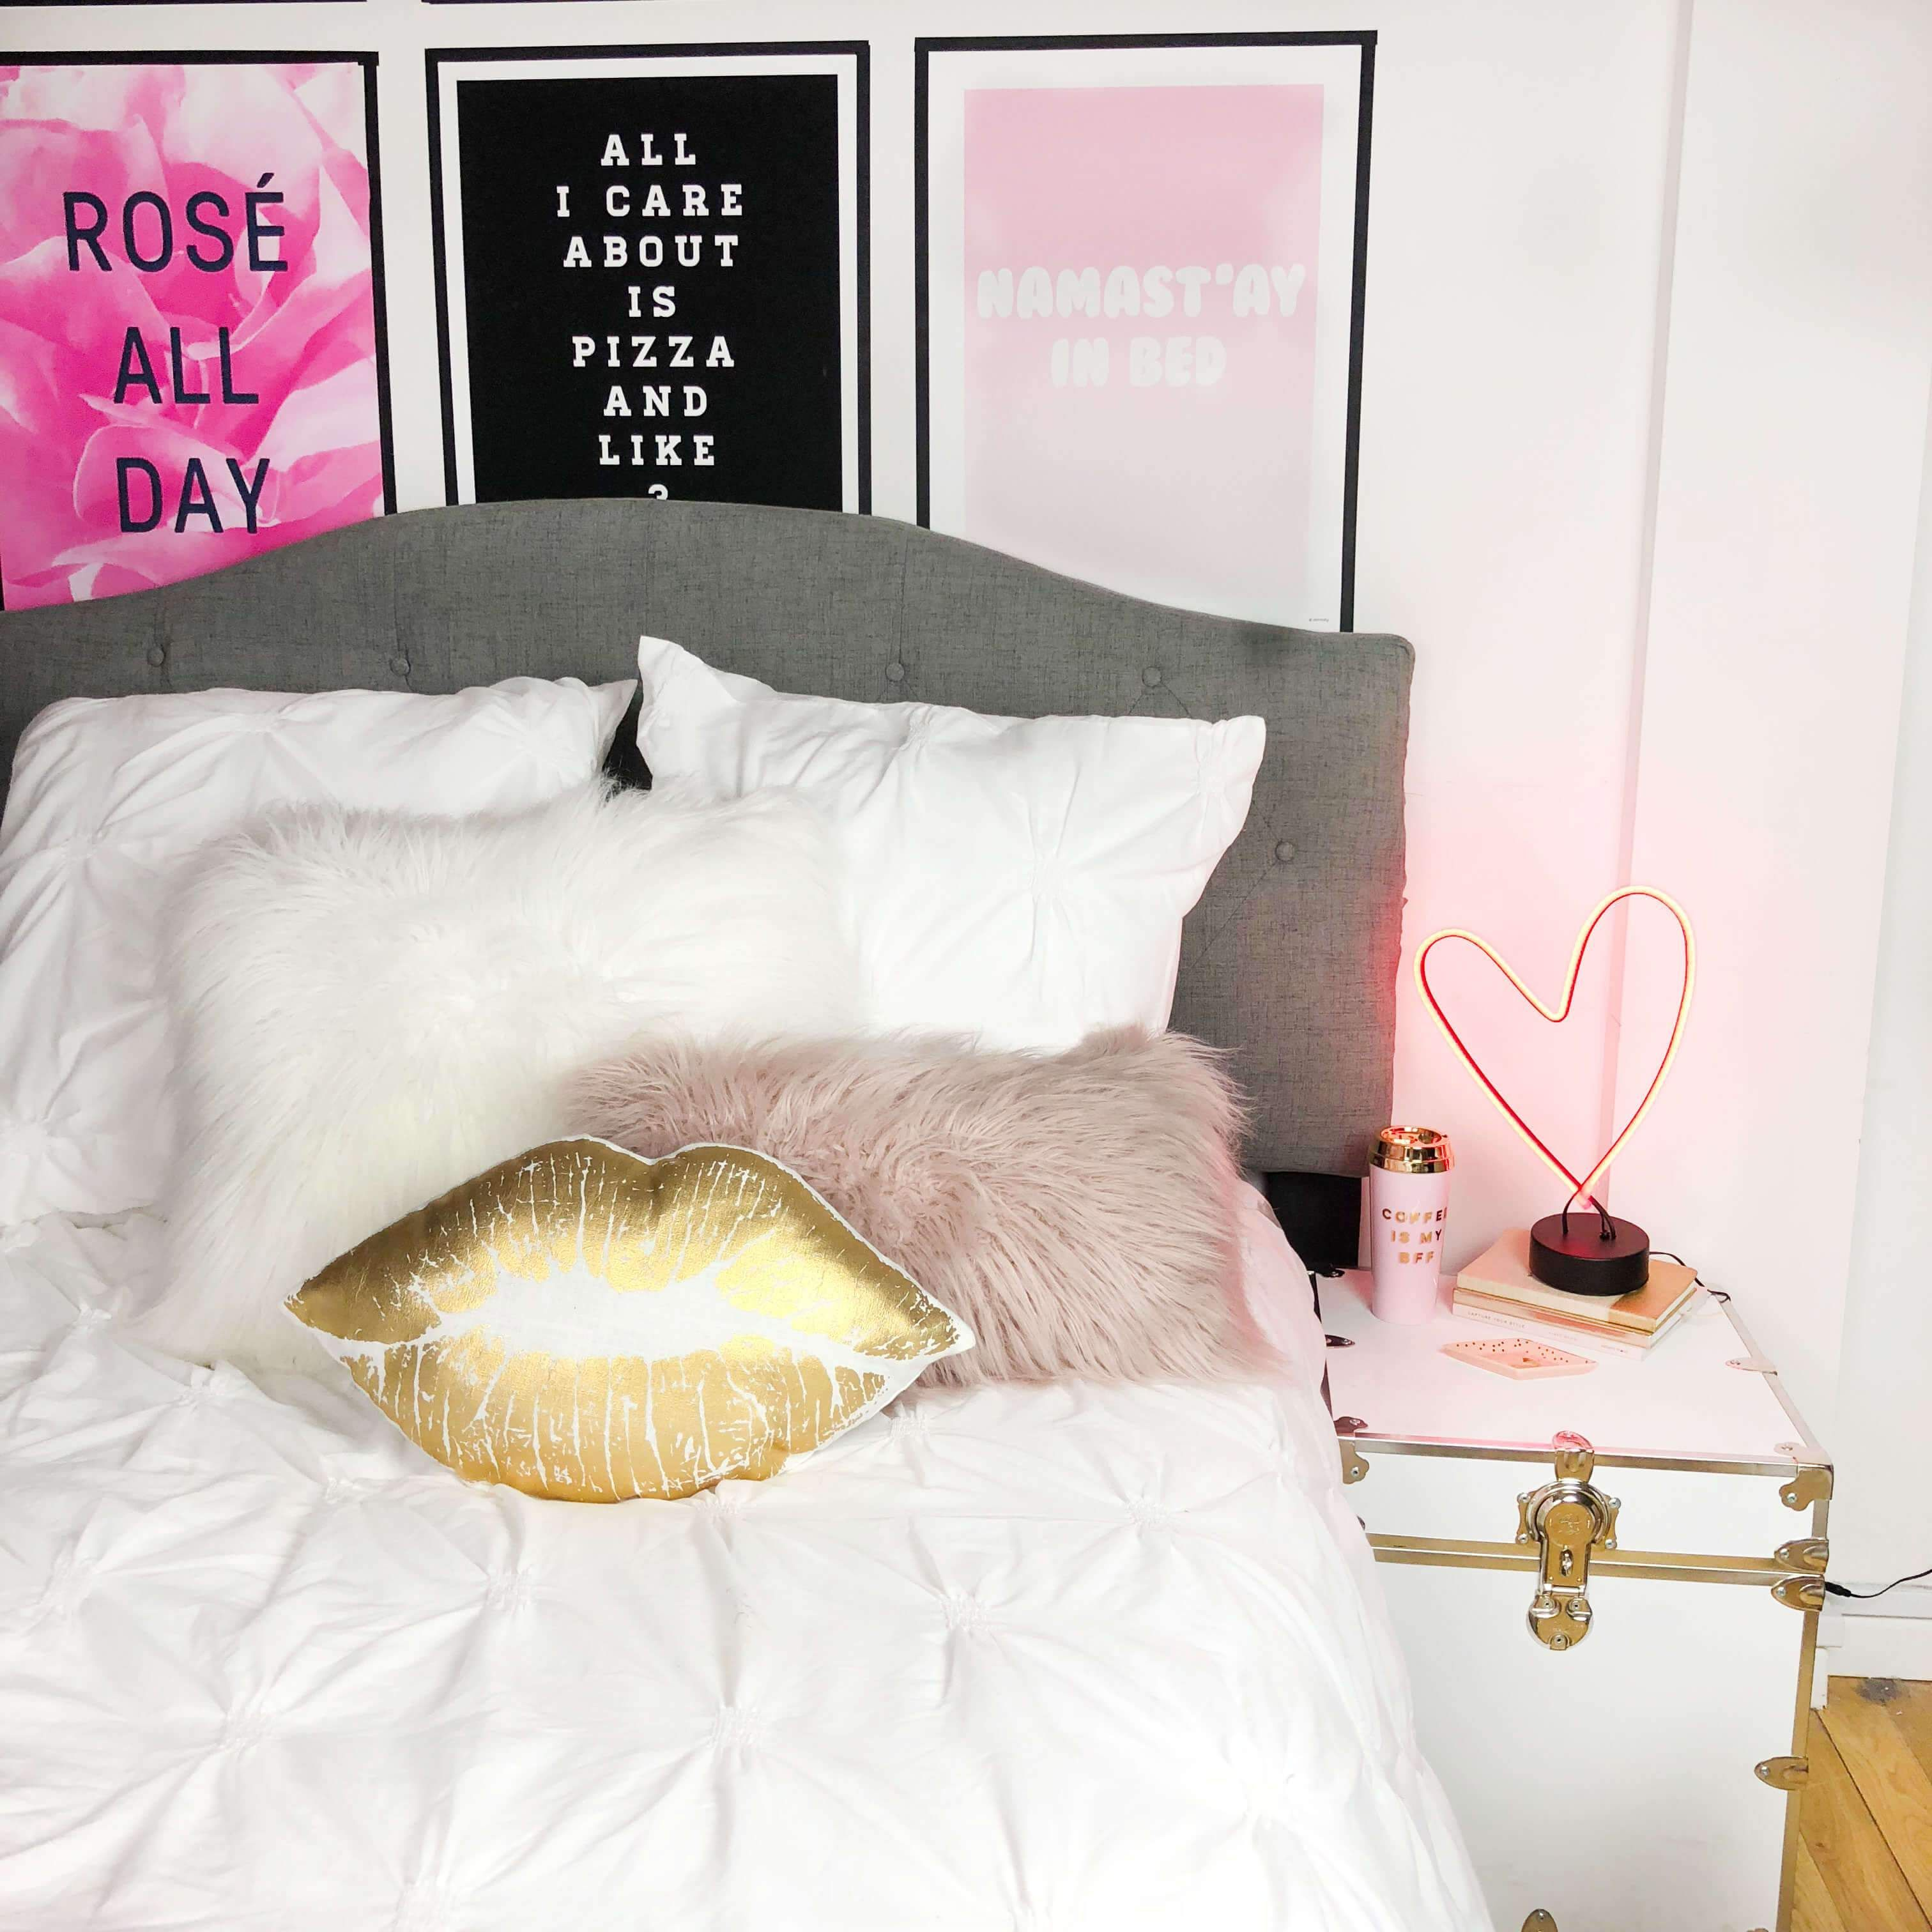 Light Up Your Small E With This Red Neon Led For Some Retro Vibes Perfect Nightstand Or Side Table It Will Give Room A